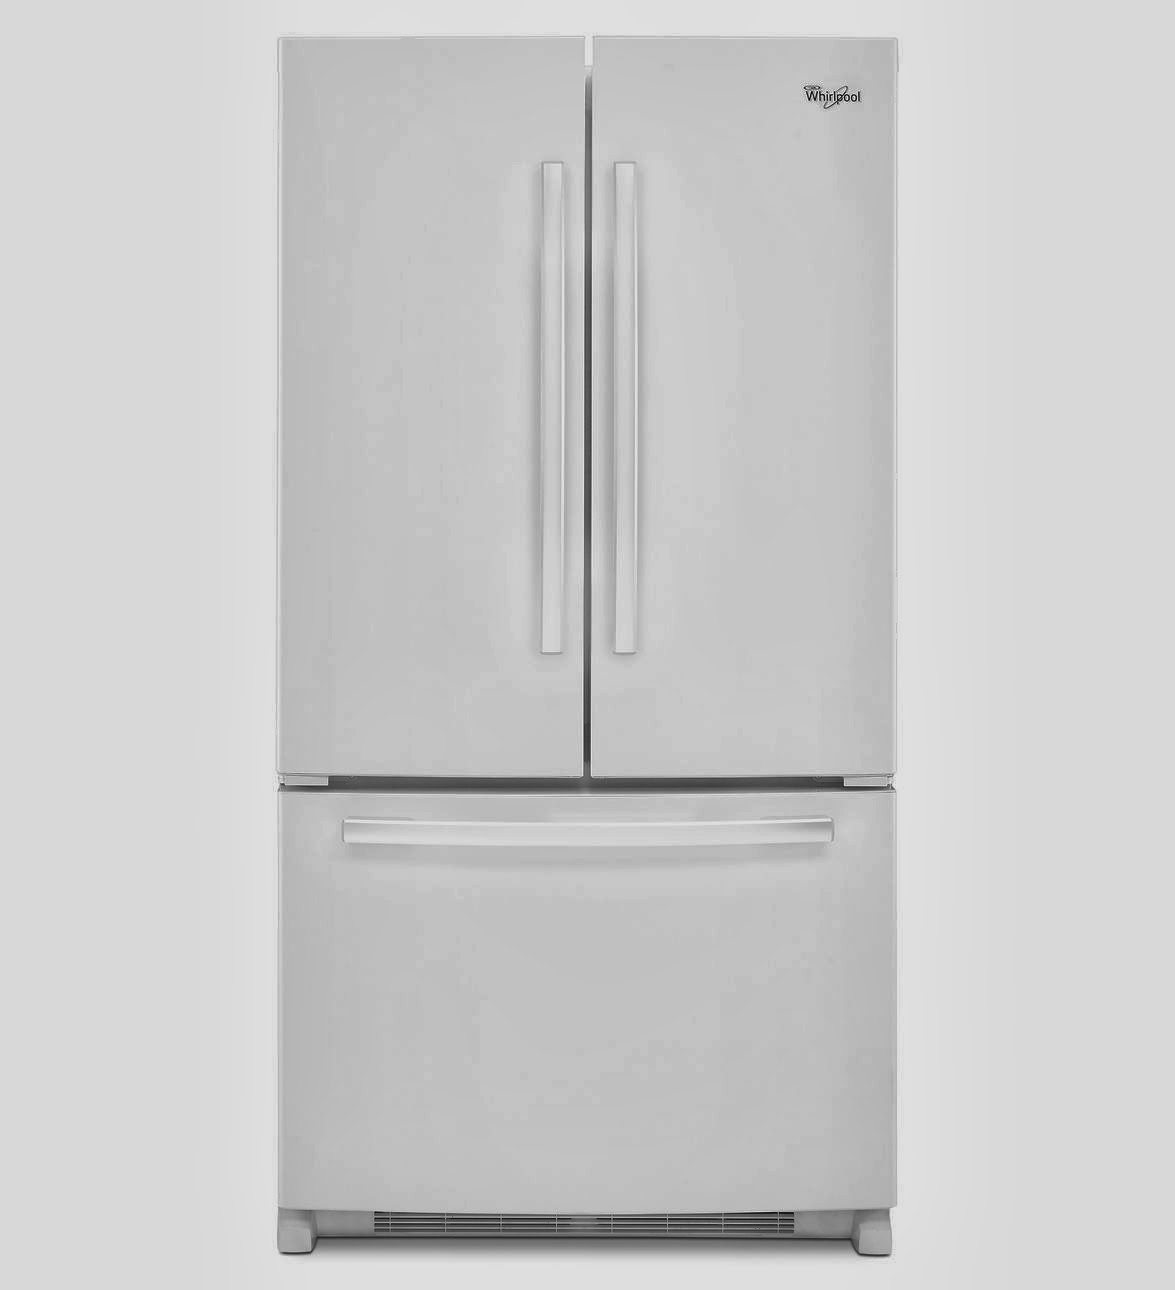 bottom freezer productpage refrigerator jpg 422x640